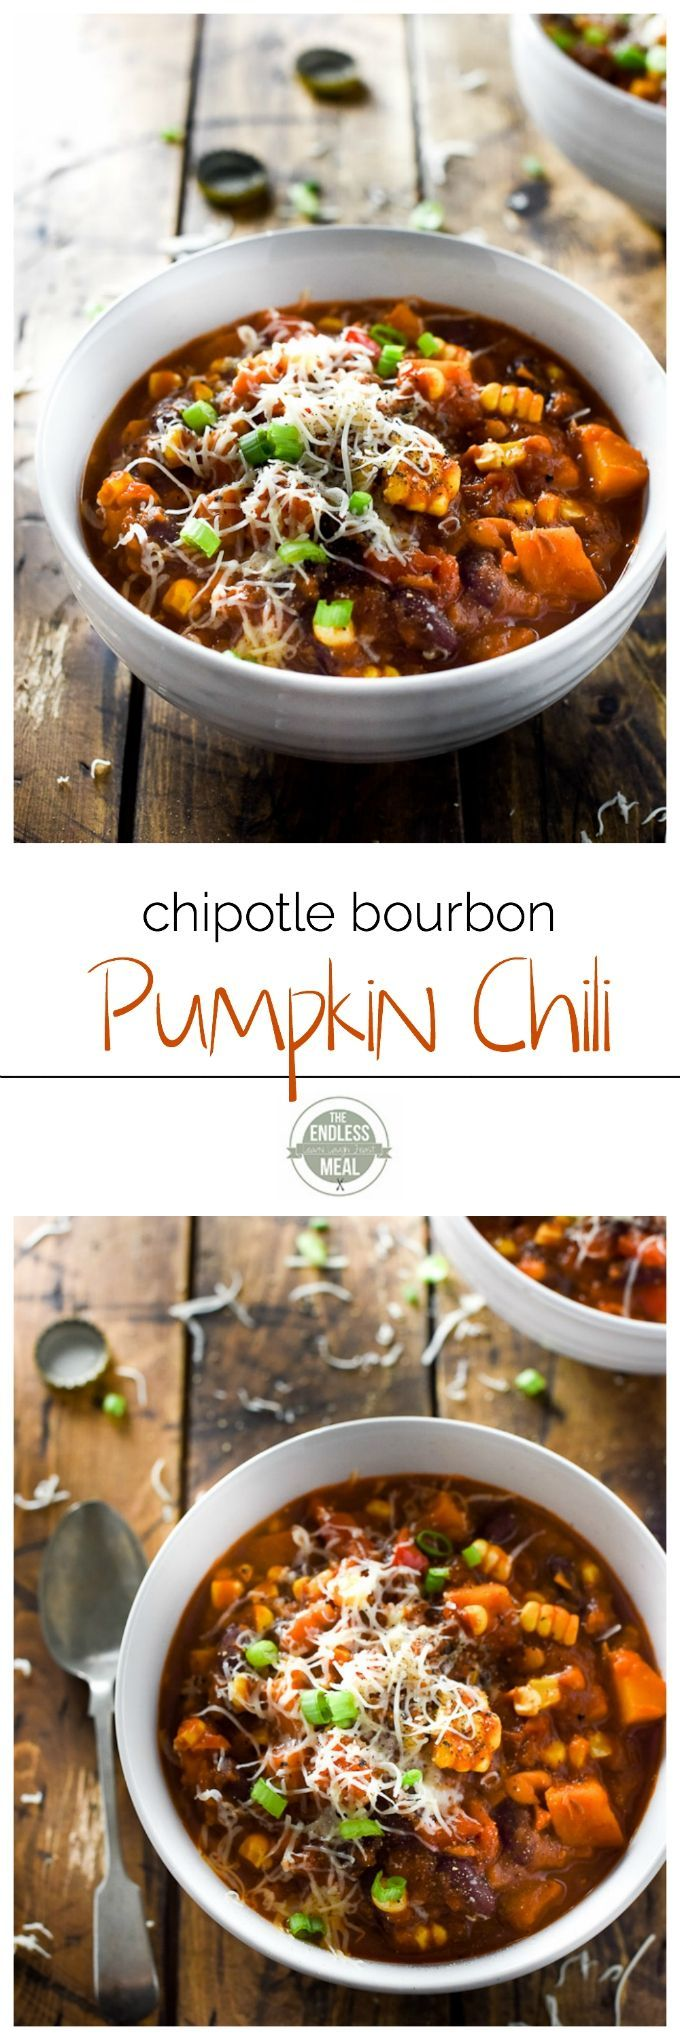 Chipotle Bourbon Pumpkin Chili | The Endless Meal®